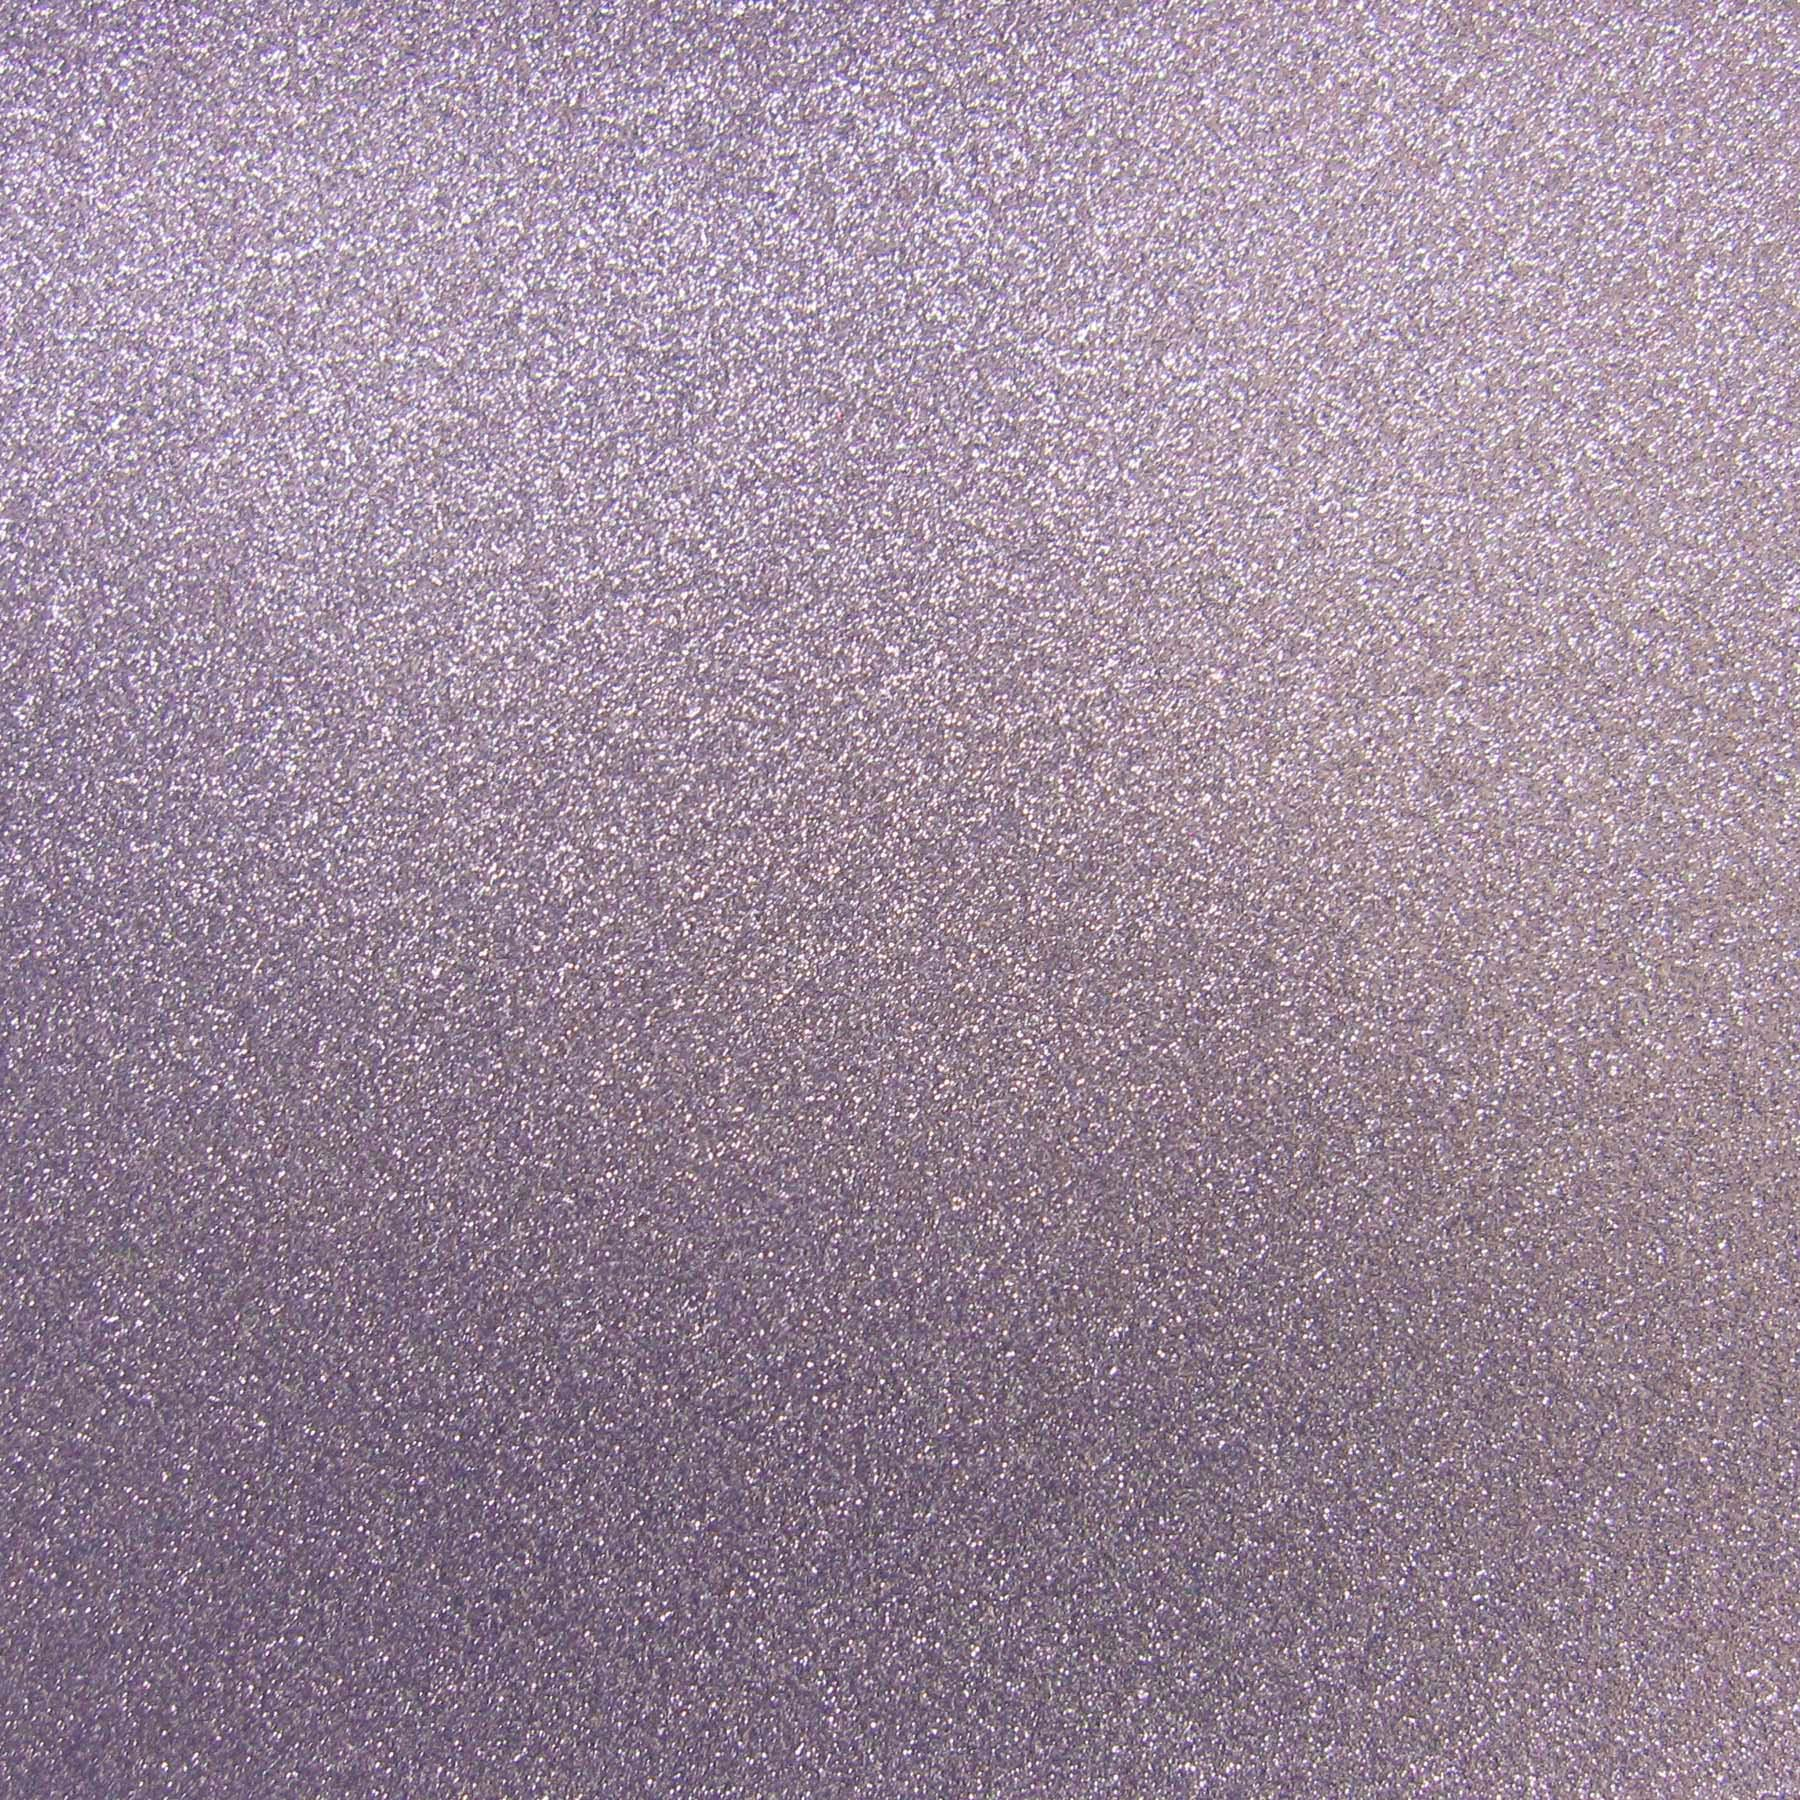 Best Creation 12-Inch by 12-Inch Glitter Cardstock, Lavender